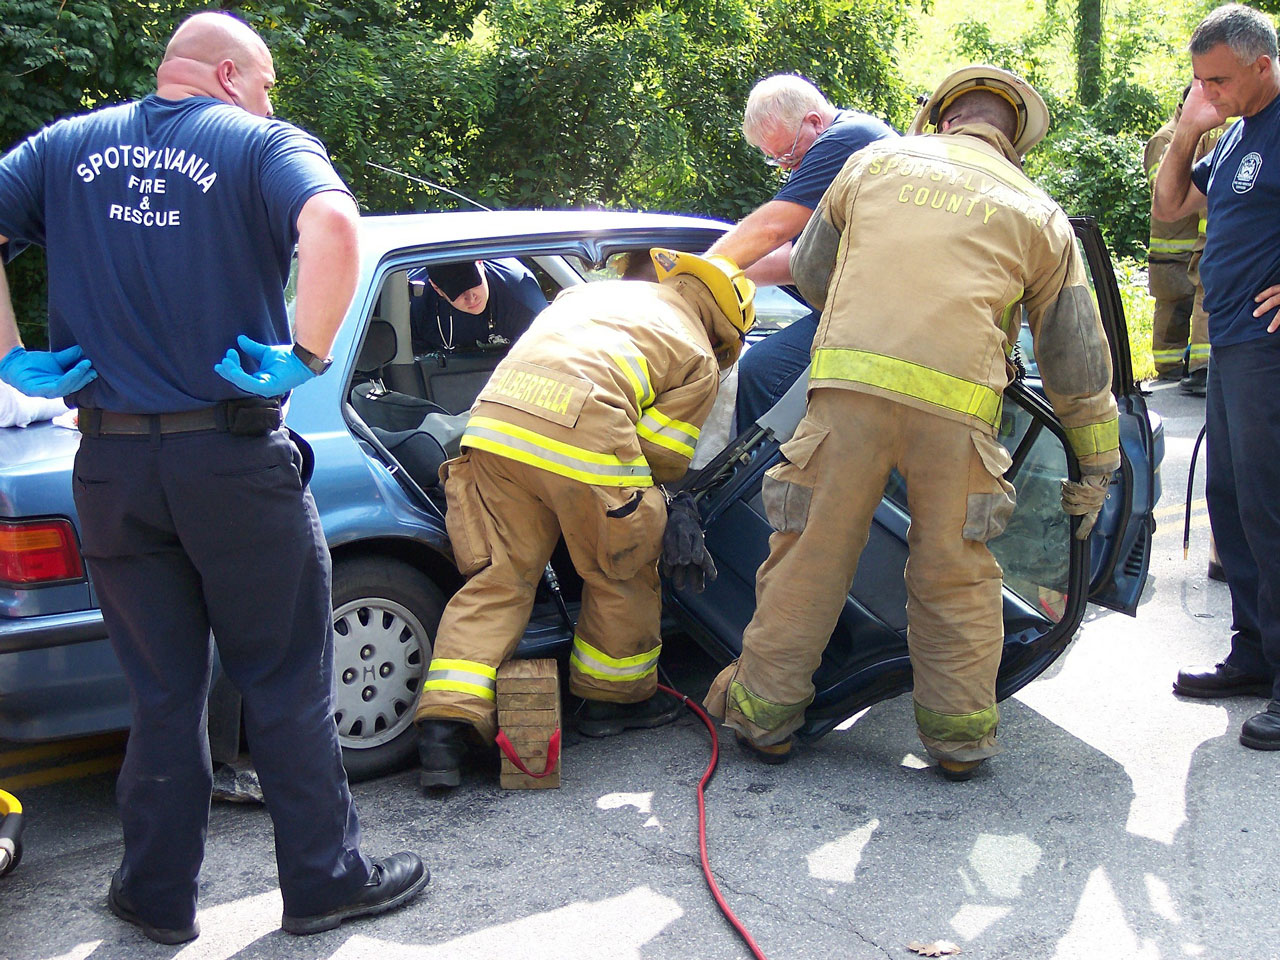 Firefighters rescuing someone from a personal injury car accident.